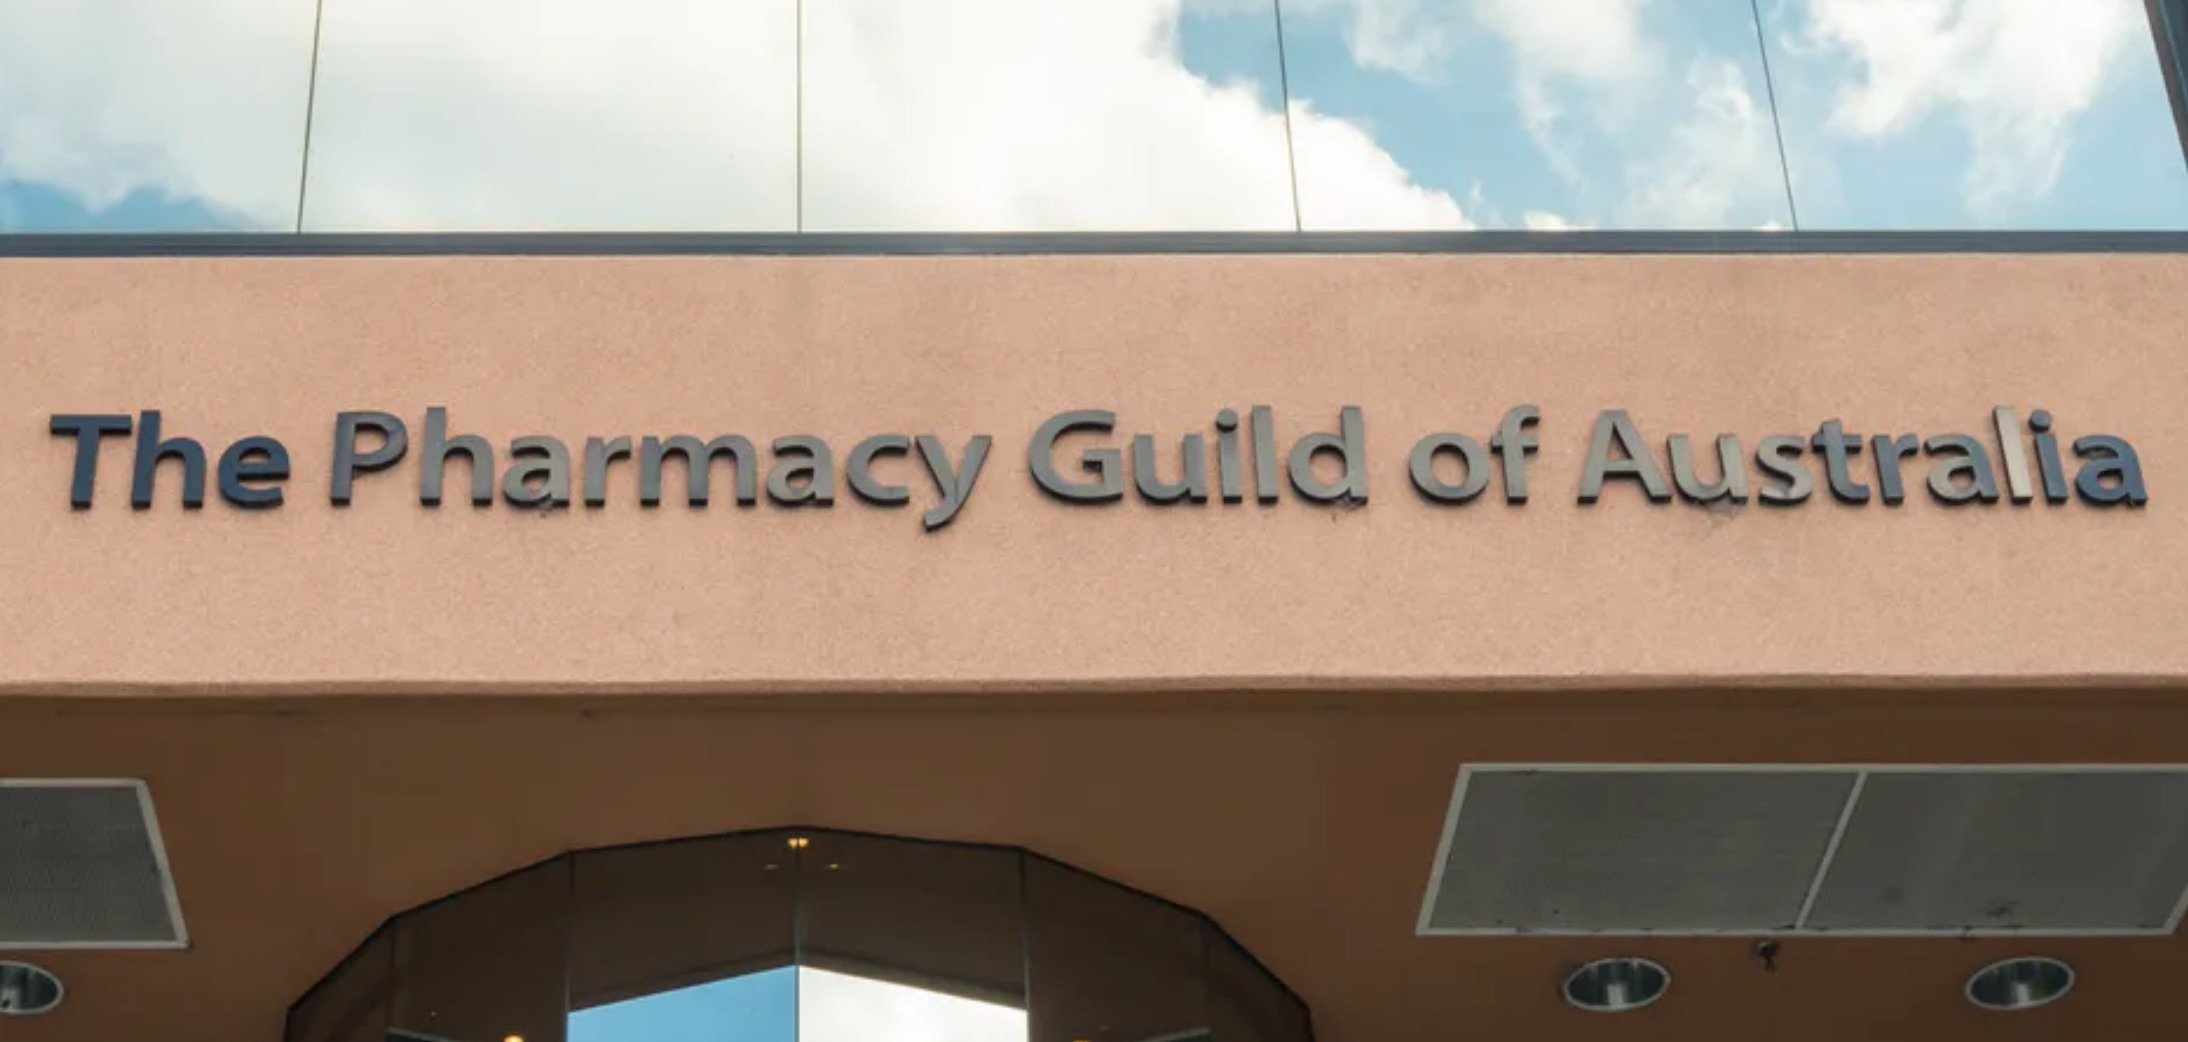 What is the Pharmacy Guild of Australia and why does it wield so much power?